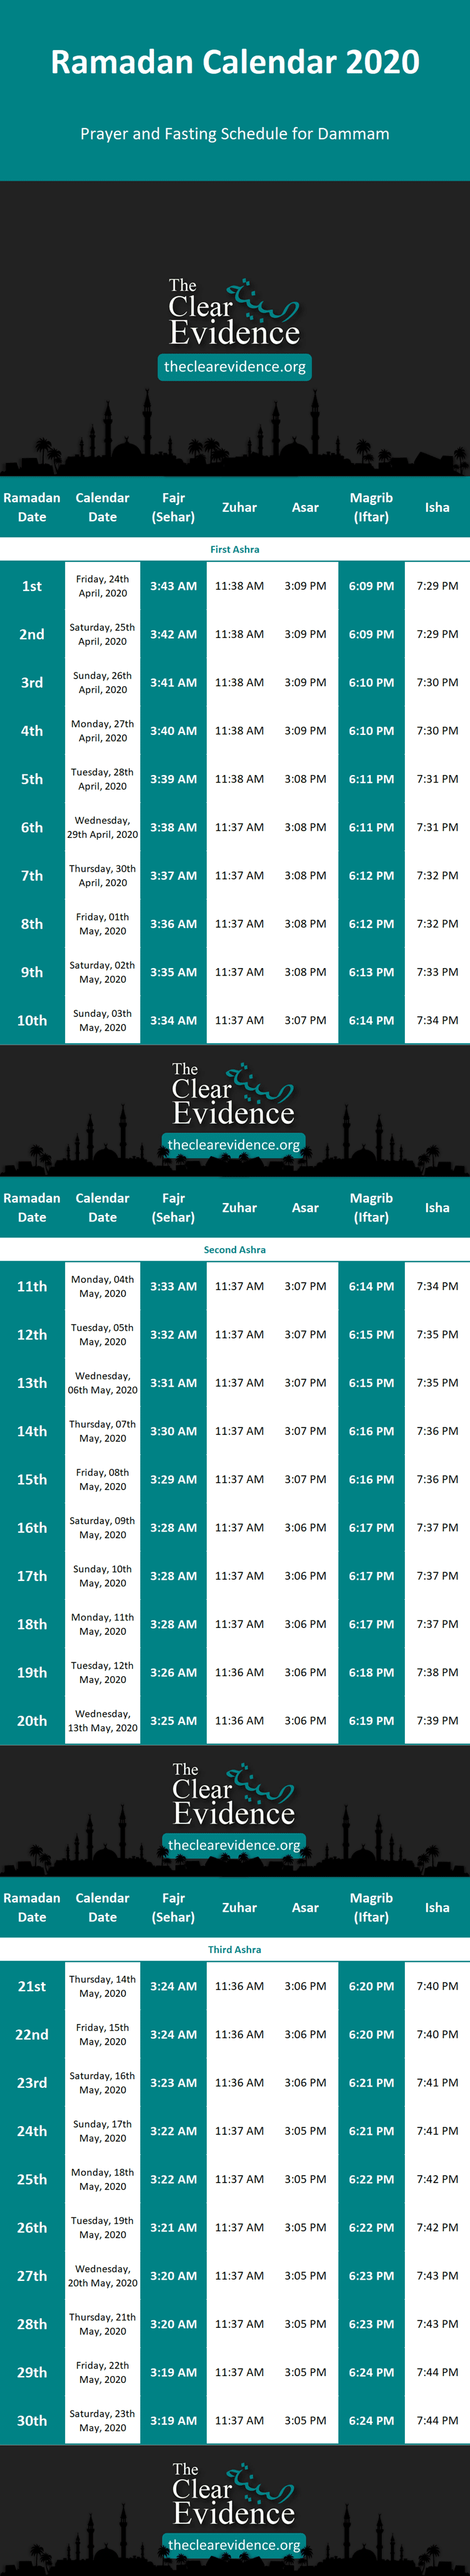 Prayer (Salah/Namaz) and Fasting (Sawm/Rozah) (Suhur/Sehri) (Fatur/Iftar) Schedule in Ramadan 2020 for Dammam, Saudi Arabia